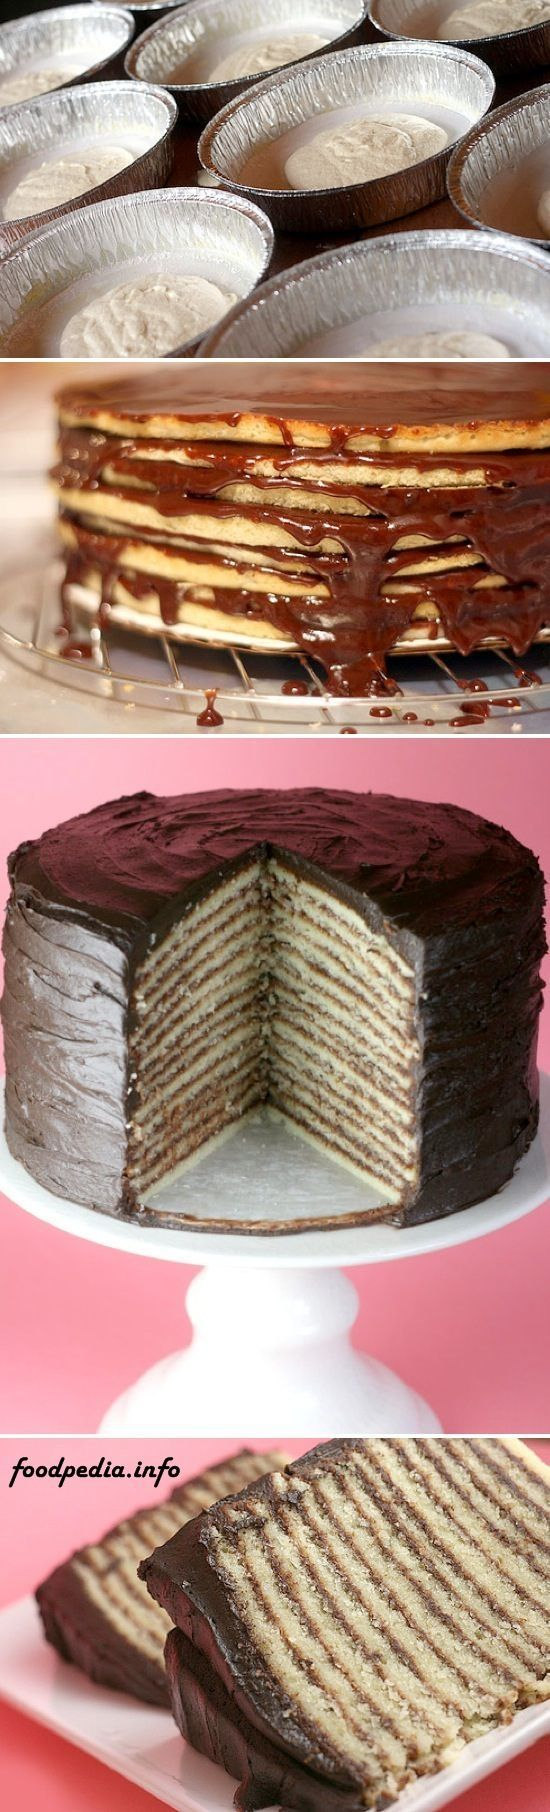 AKCollection: Layers Cake